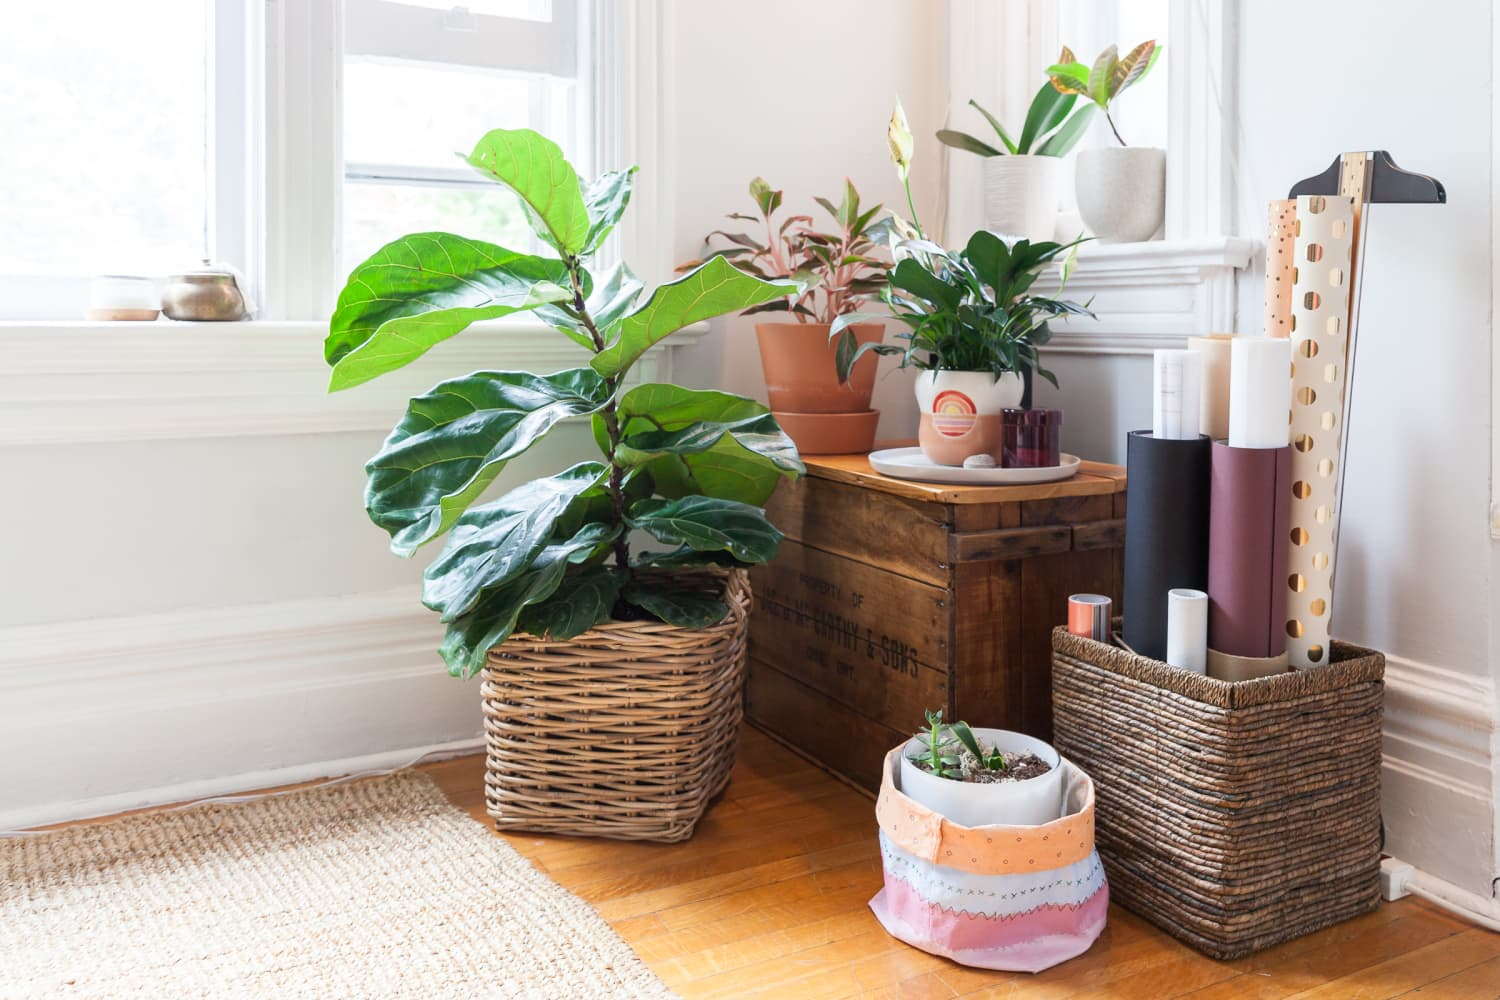 5 Ingenious Plant Tricks You Haven't Tried Yet